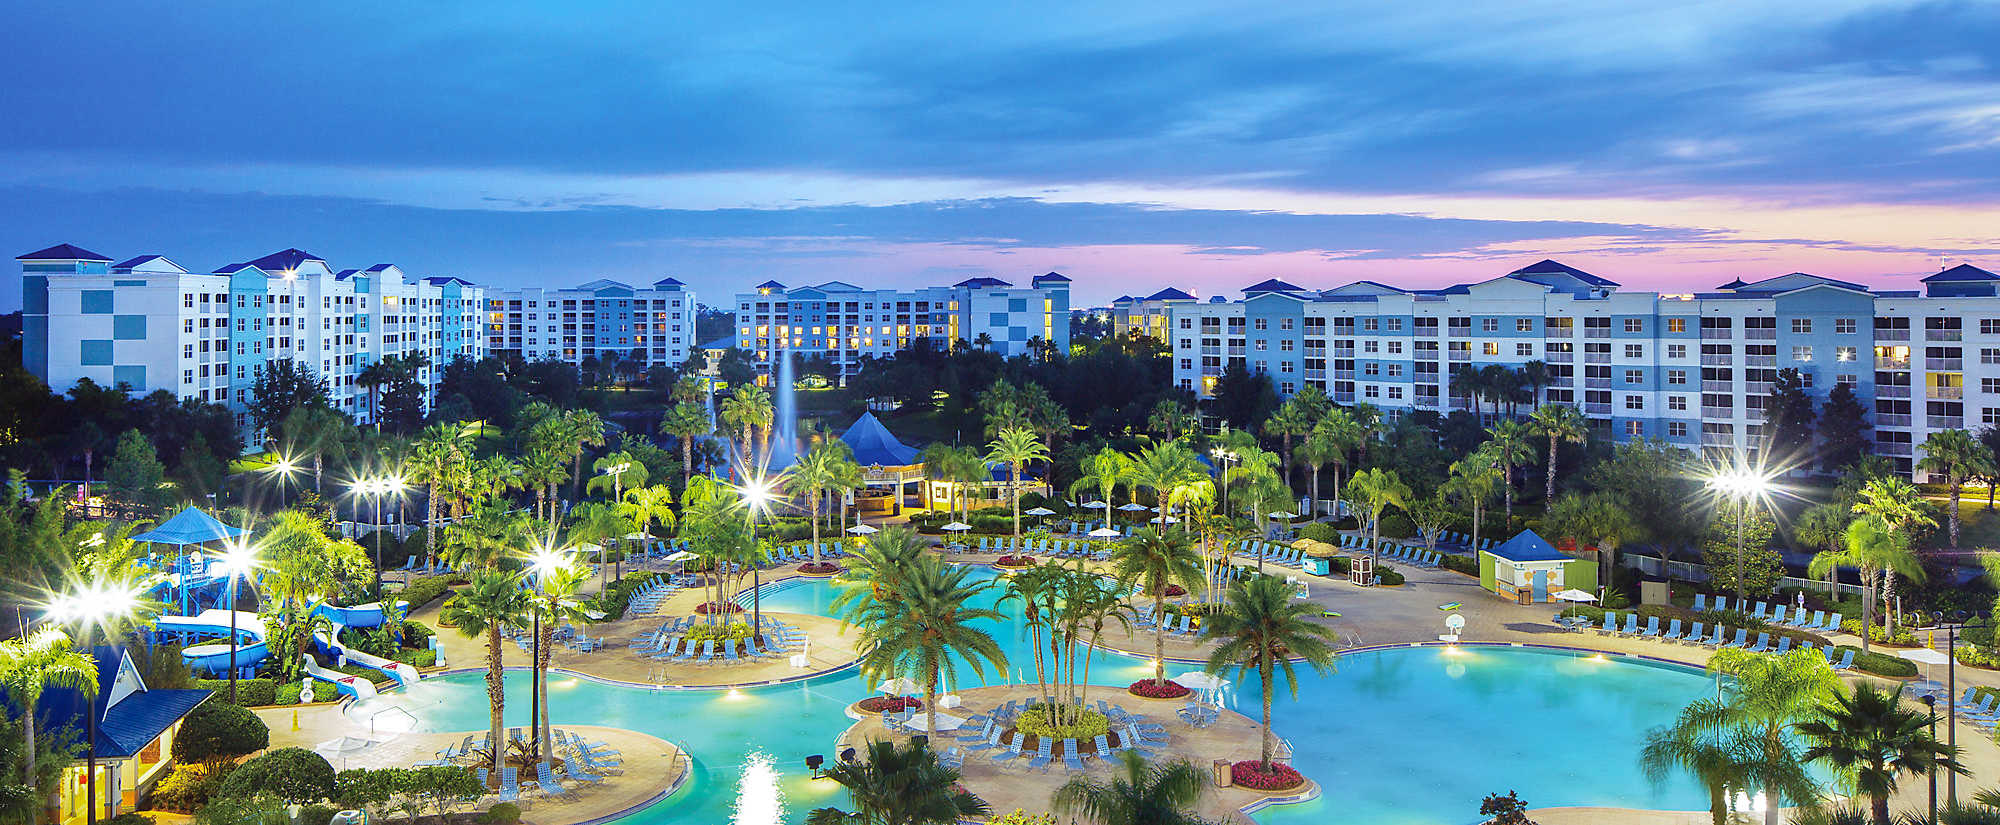 Vacation Ownership , Timeshare Resorts | Bluegreen Vacations